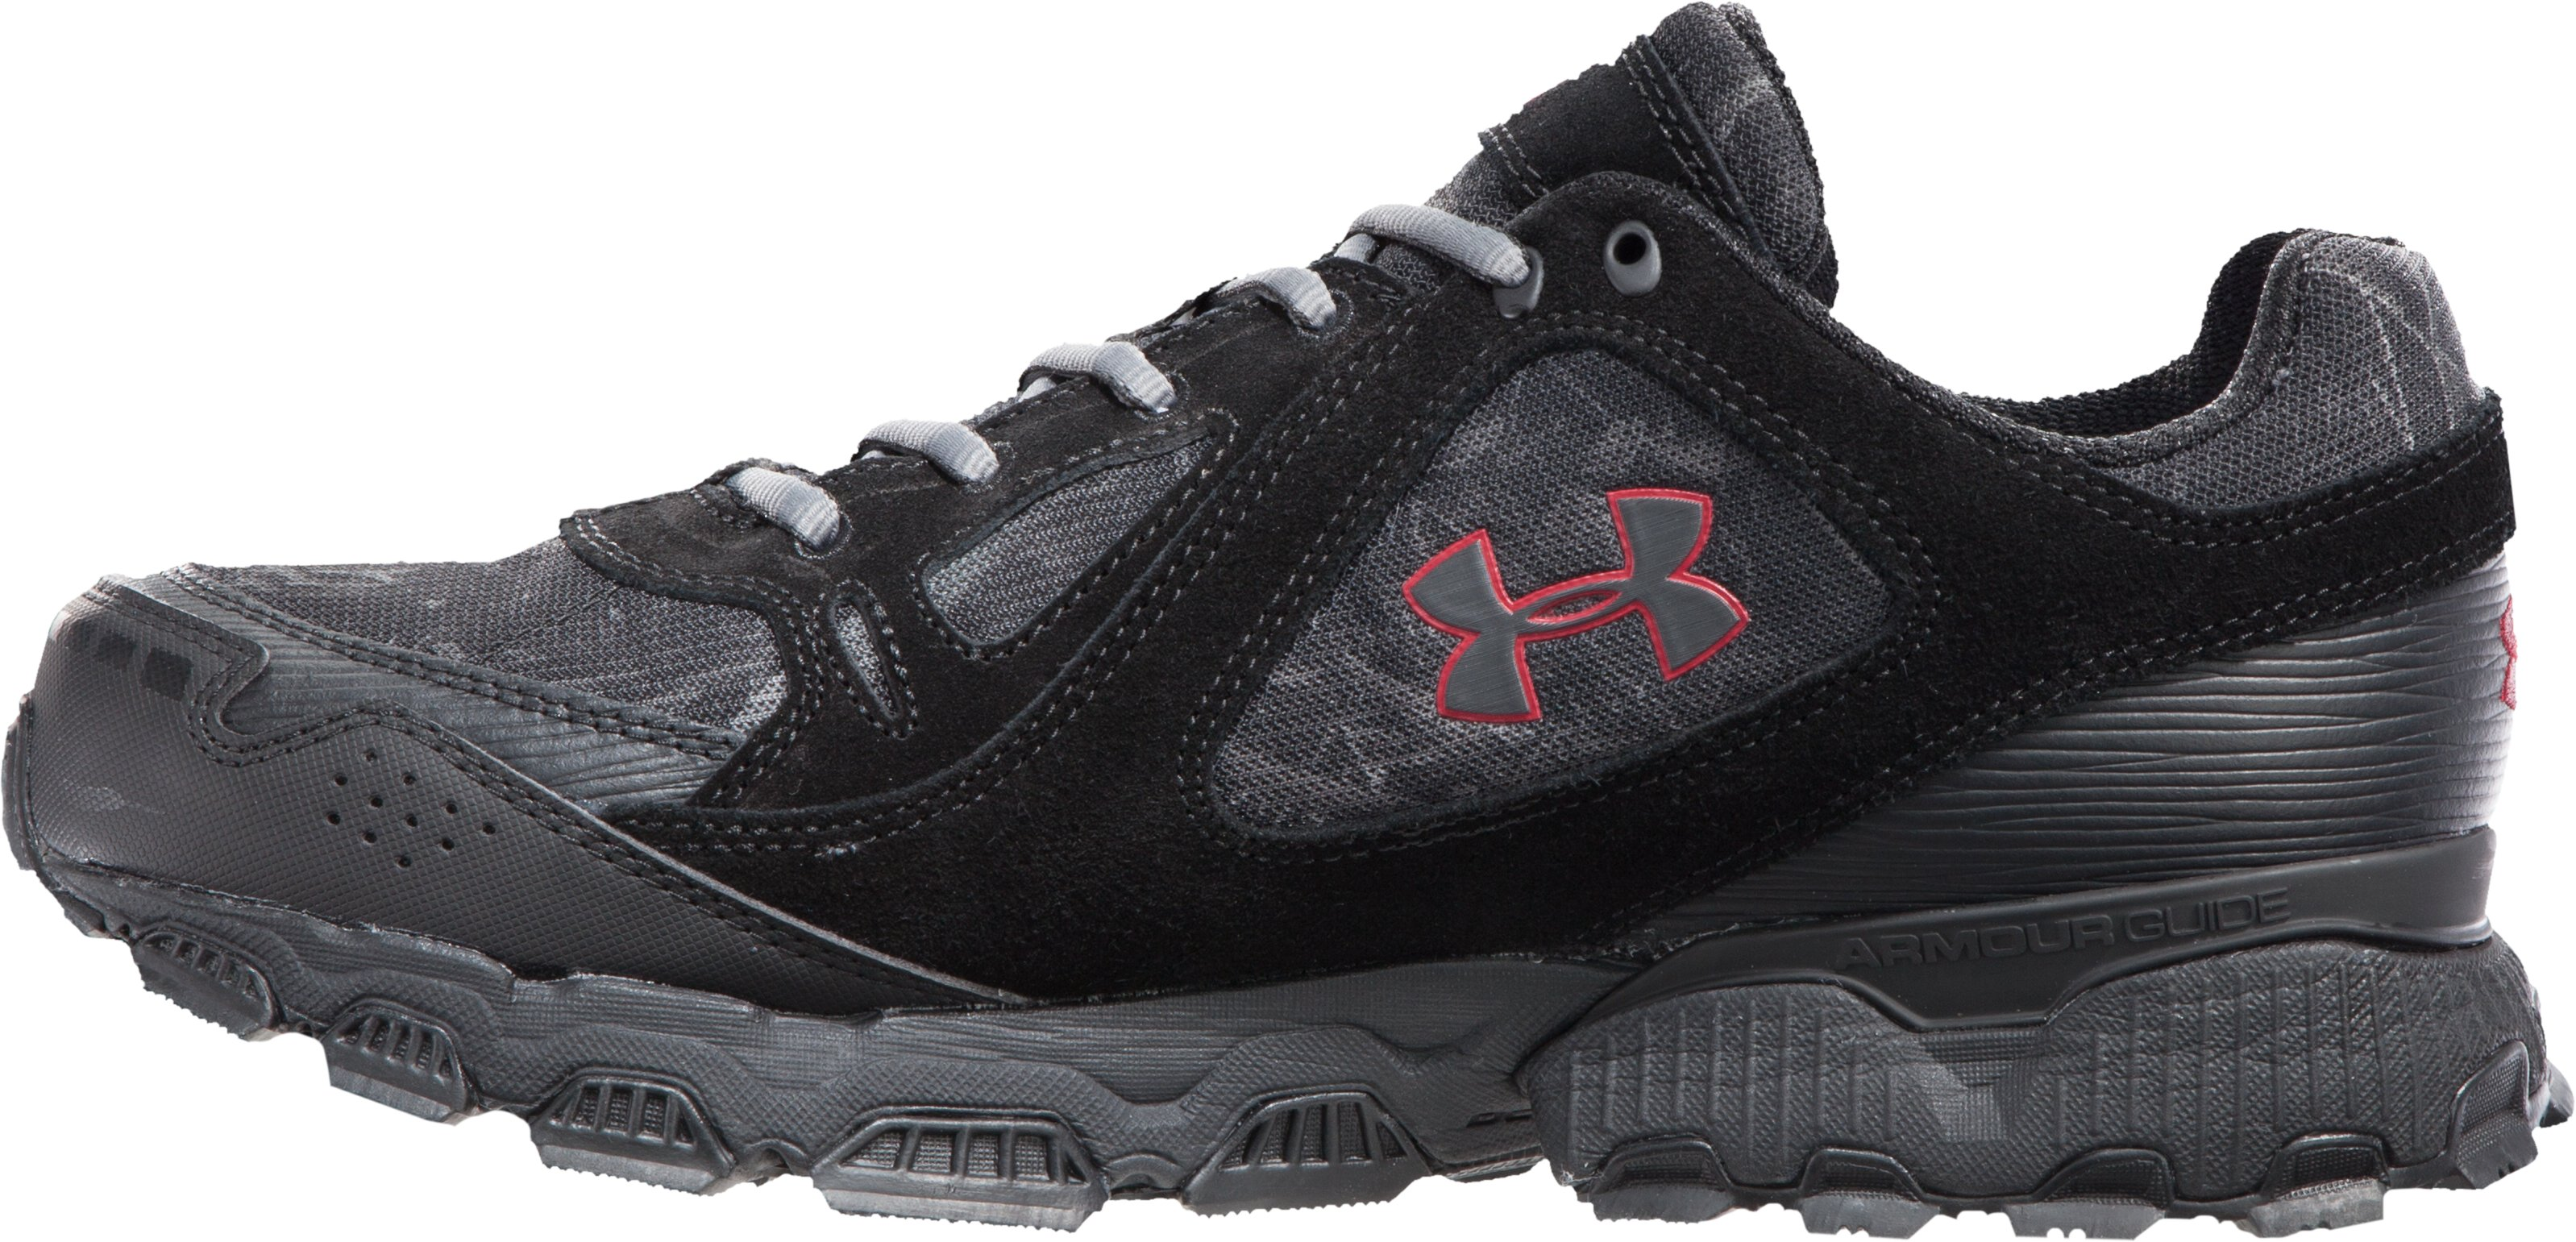 Men's Chetco II Trail Running Shoes, Black